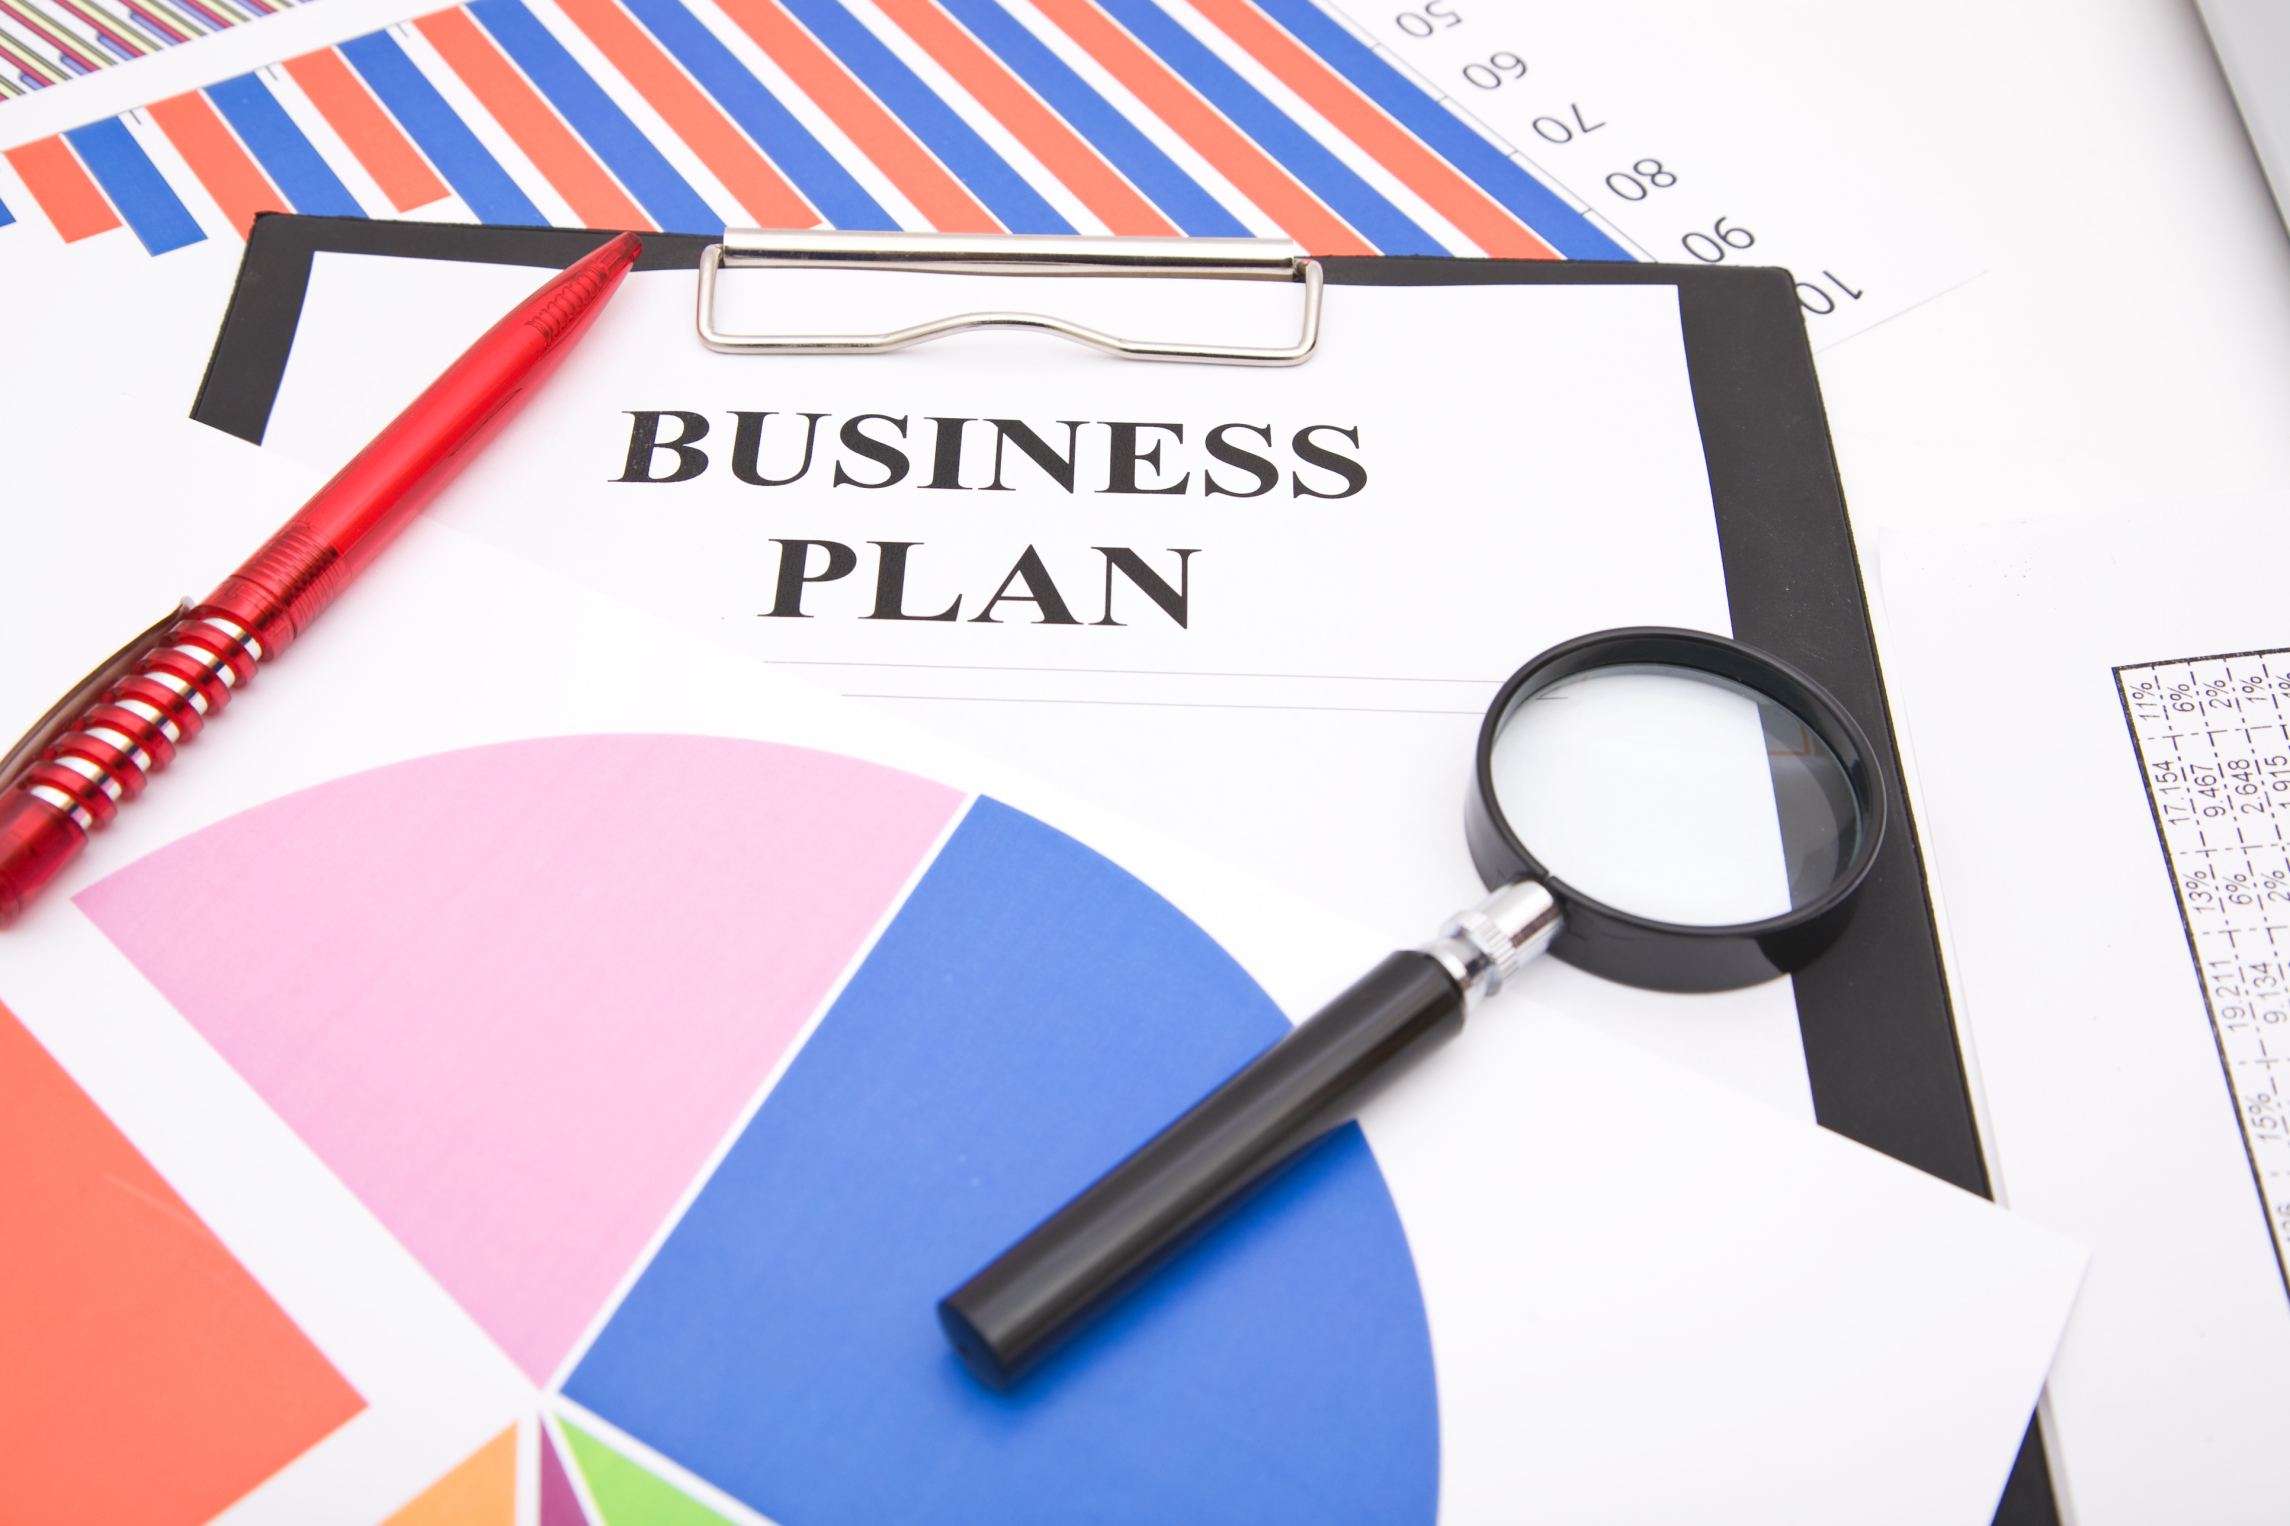 help to write a business plan Our team of experts has compared the best business plan software for 2017 see up-to-date comparisons, reviews & costs for the top rated services.